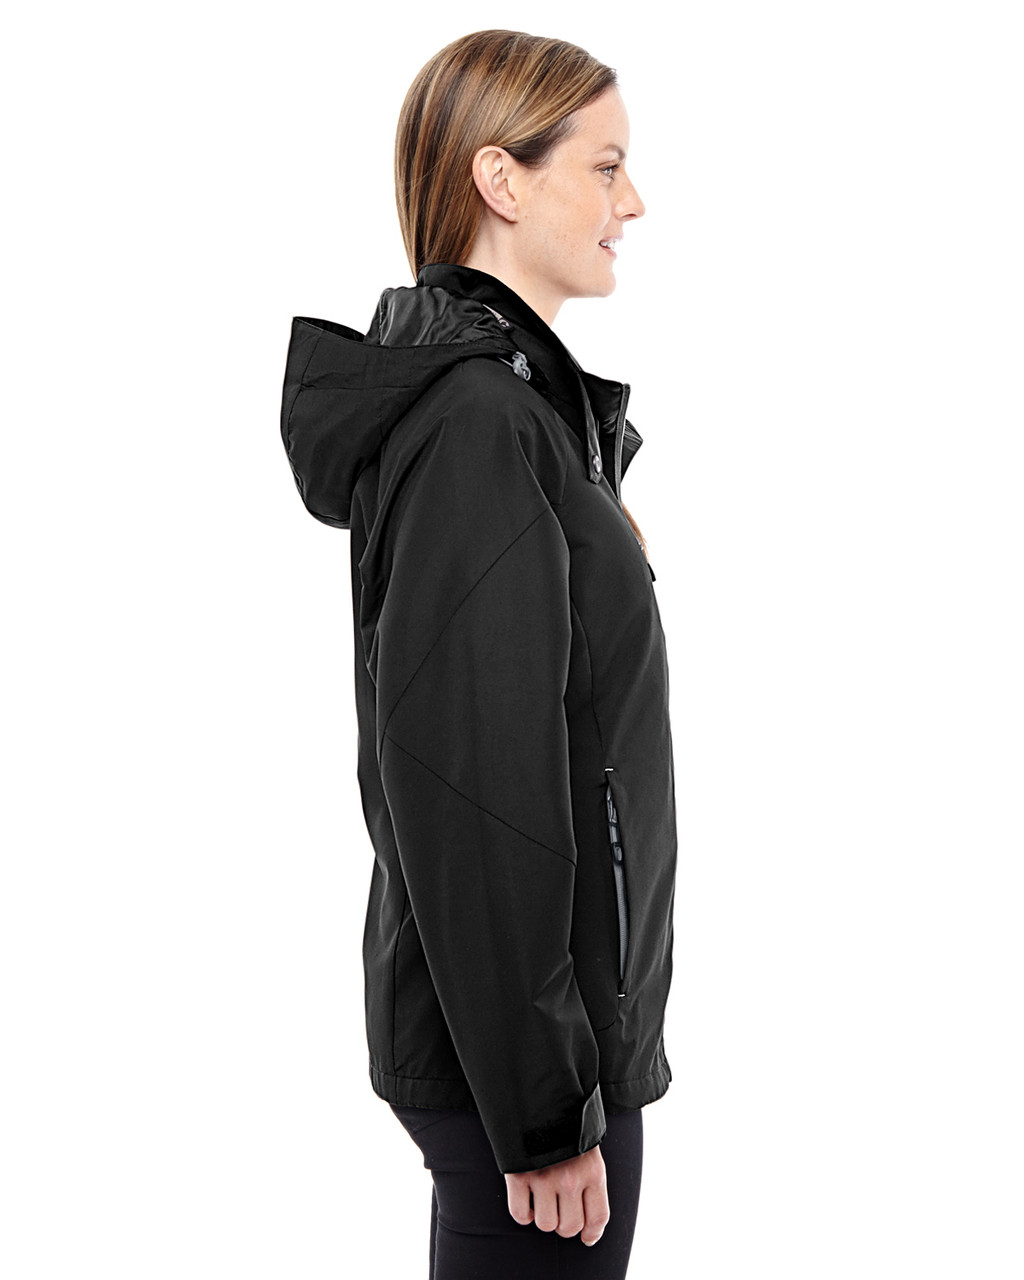 Black/Graphite - side 78226 North End Ladies' Insight Interactive Shell Jacket | Blankclothing.ca